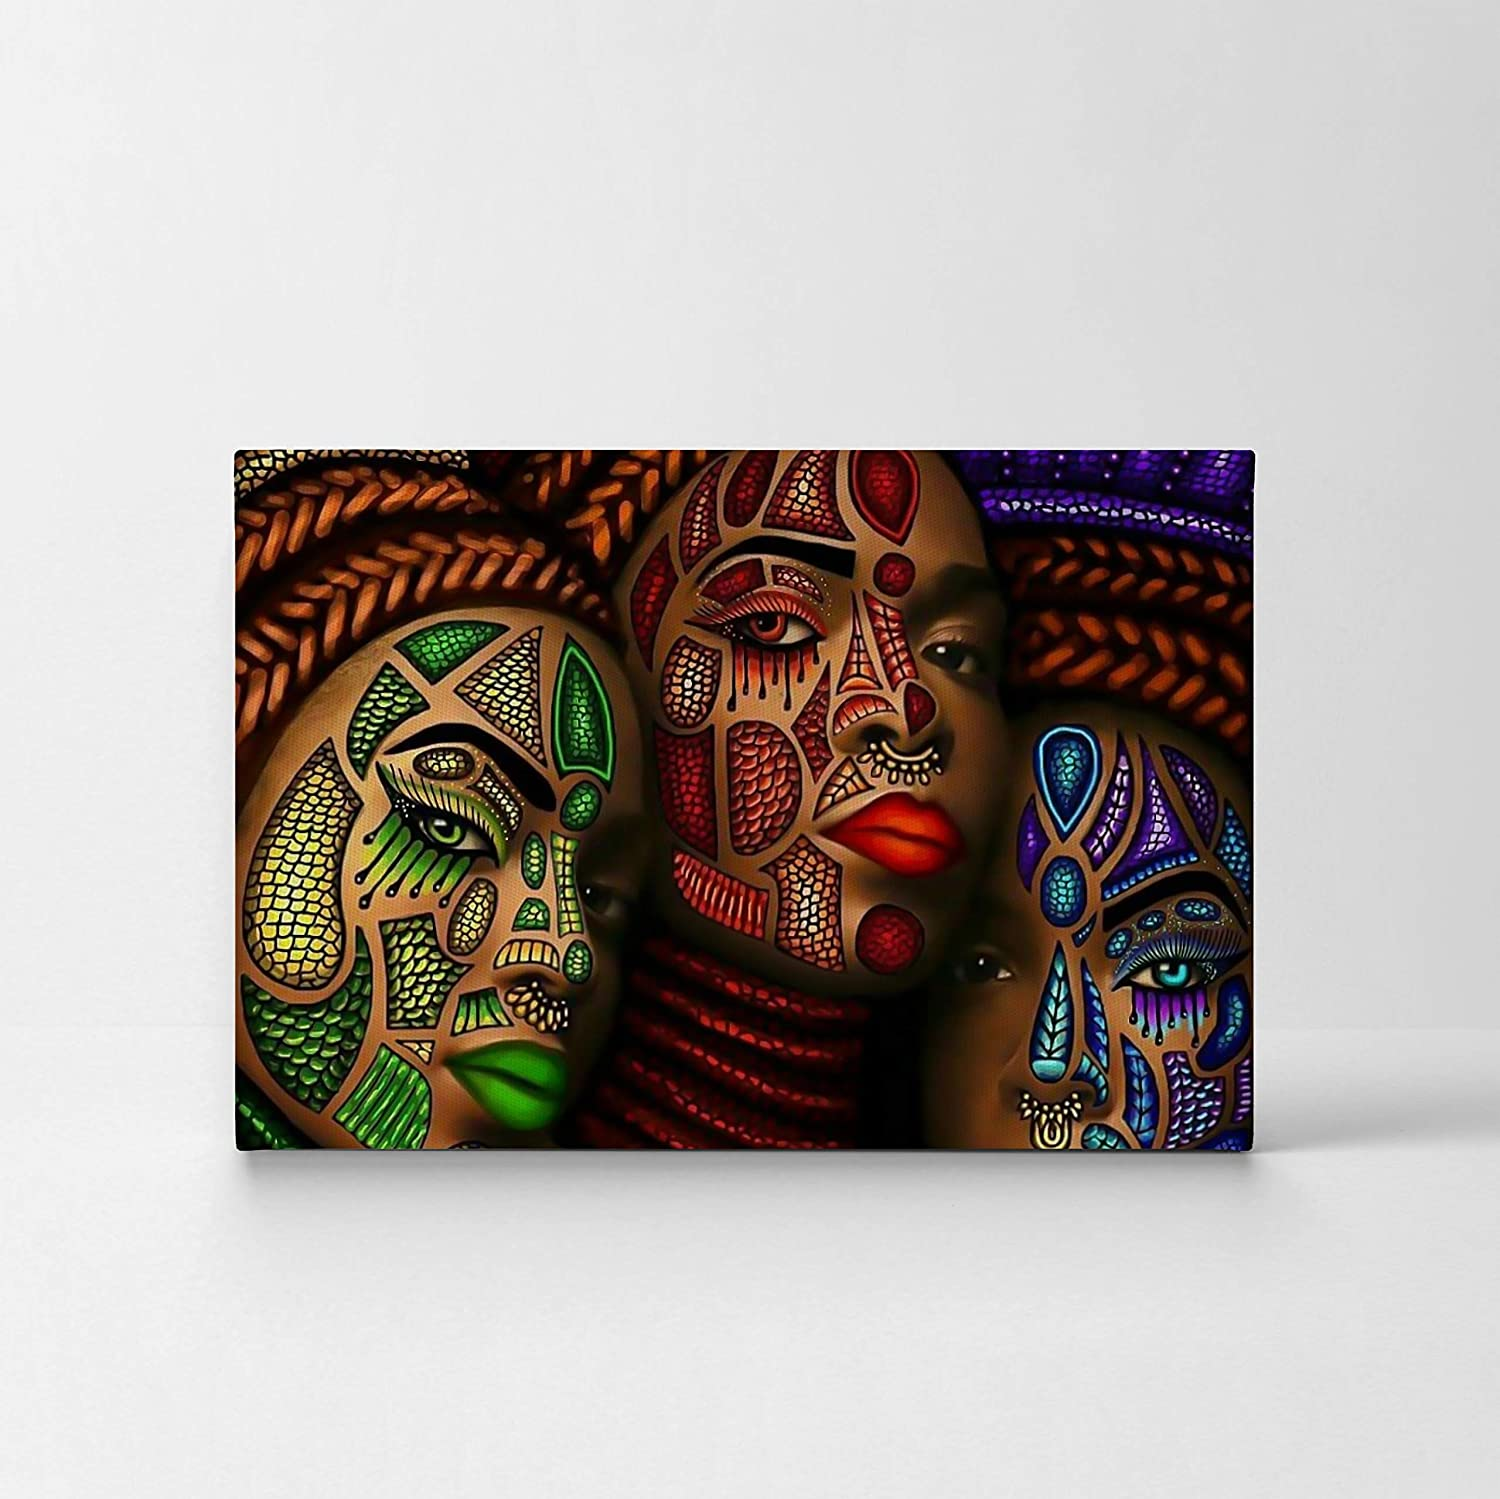 Smileartdesign Three African Women Stylish Make Up Modern Art Painting Canvas Print Decorive Wall Art African Art Home Decor Stretched Ready To Hang